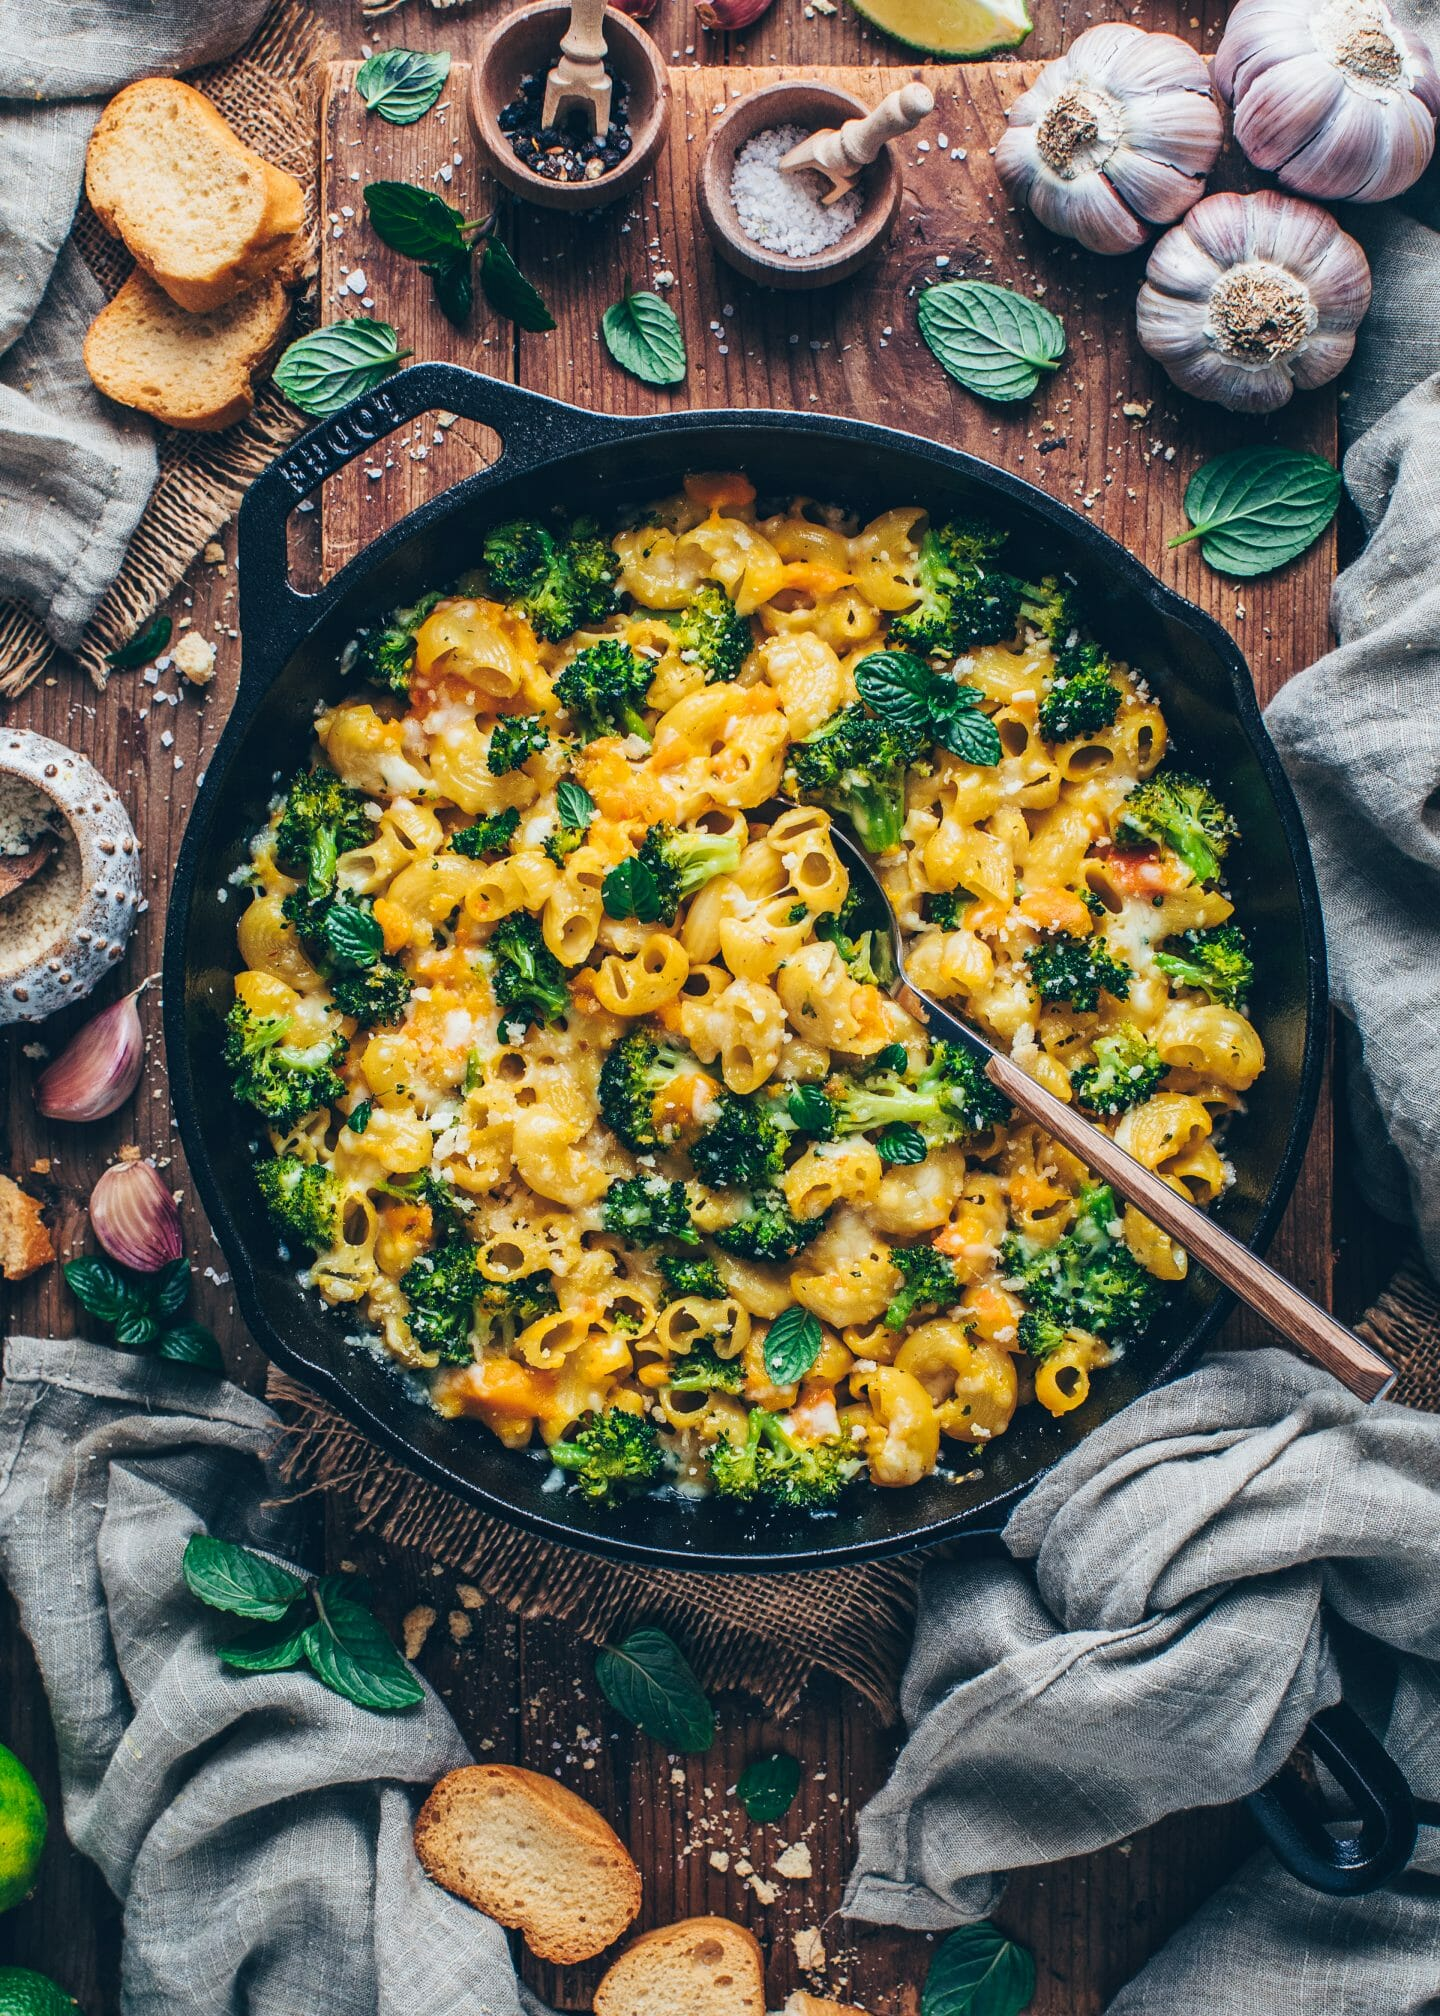 Baked Vegan Mac and Cheese with Broccoli